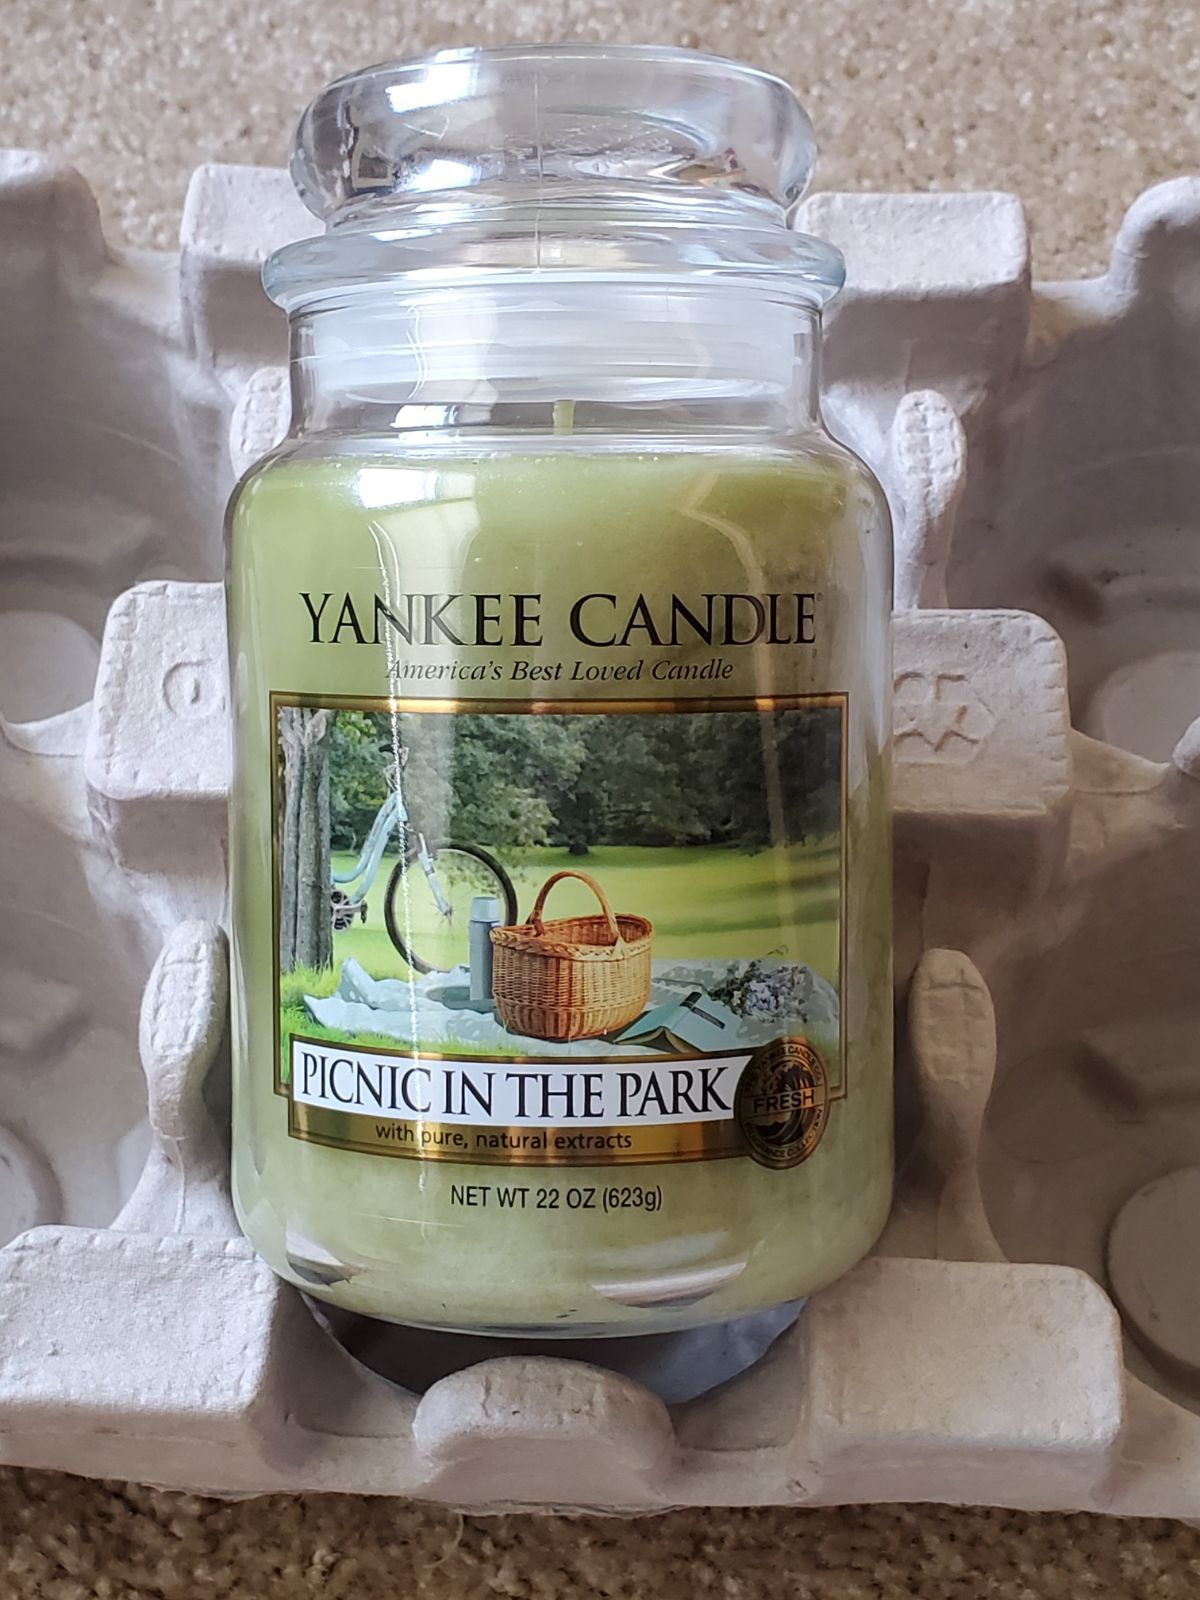 2017 22oz Yankee Candle Picnic In The Park Retired Scent Yankee Candle Picnic Candles Yankee Candle Scents